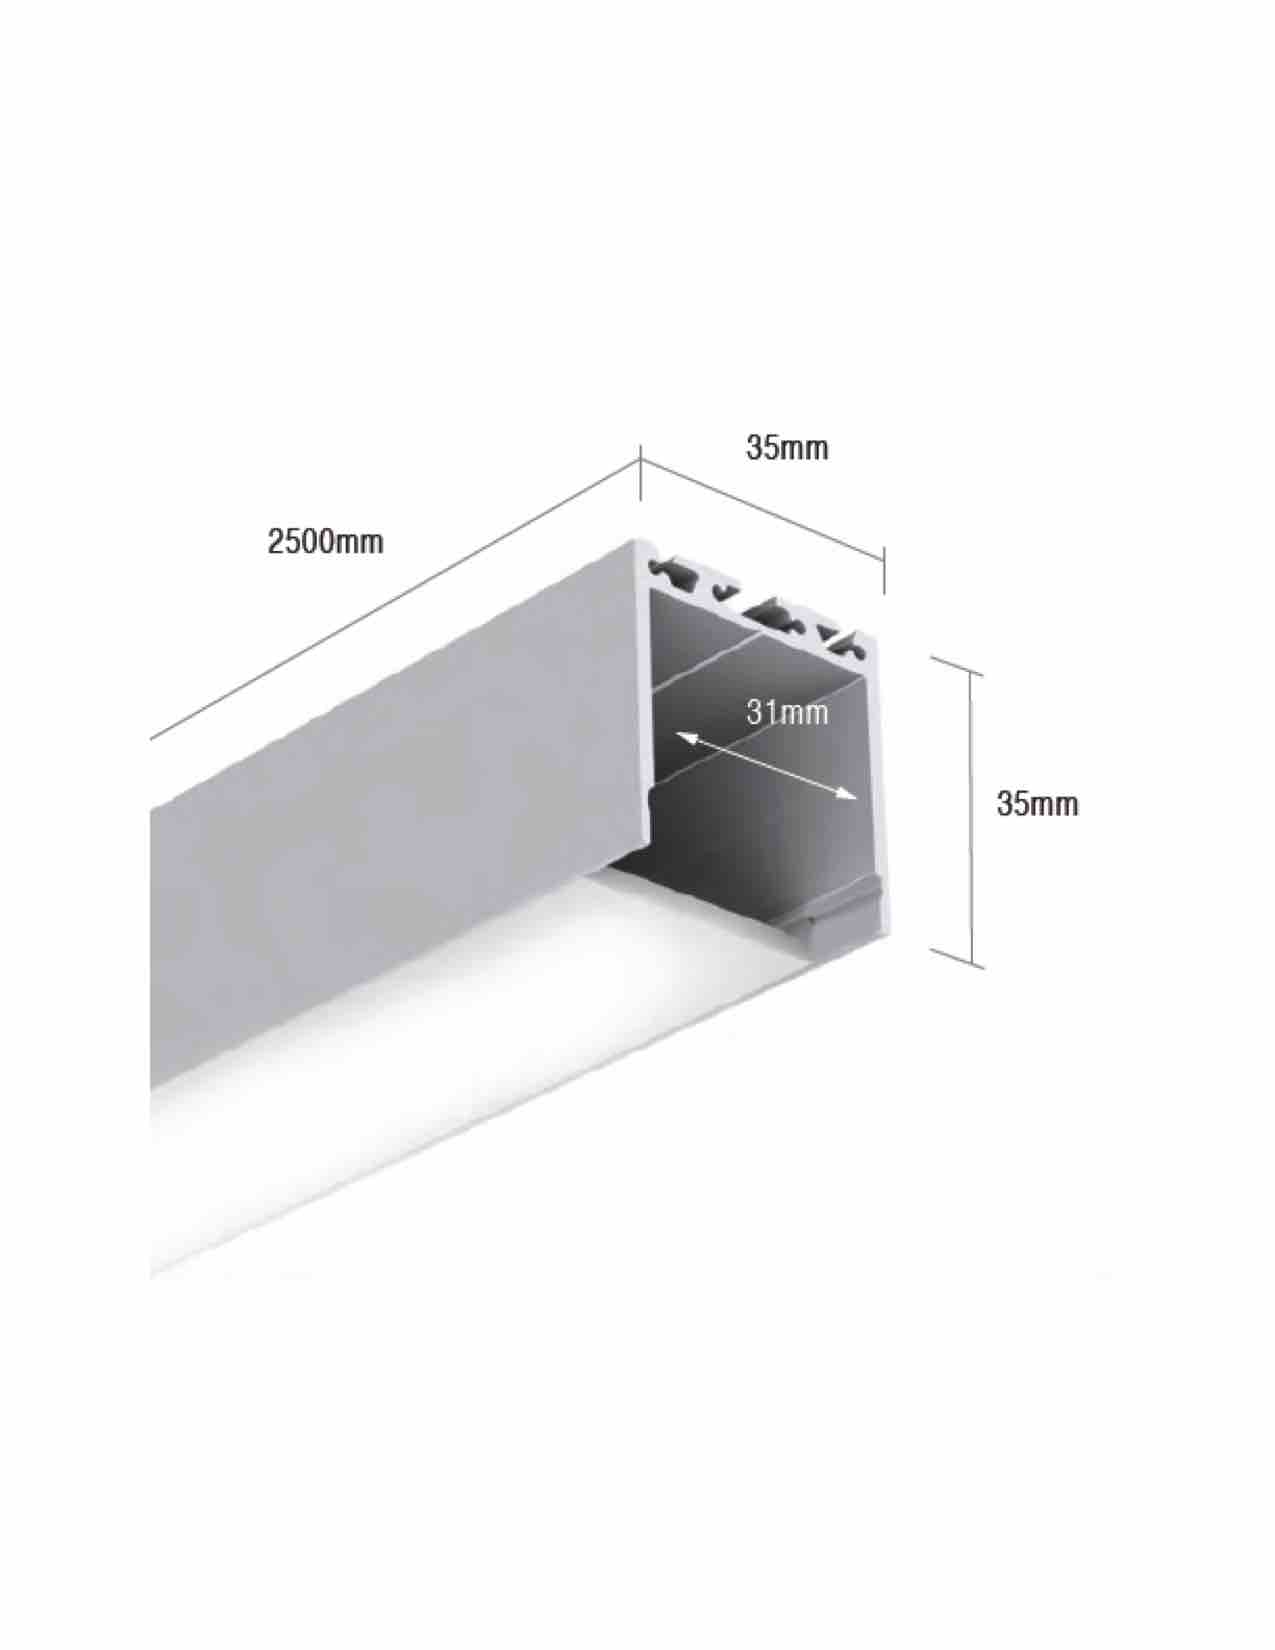 Custom Built Linear Led Lights For Offices Residences Condos And Used To Create Color Changes Using 4 Bright S Mounted In Corners We Have A Wide Selection Of Leds With Light Intensities Anywhere From 365 Lumens Per Meter Up 3300 Variety Different Colour